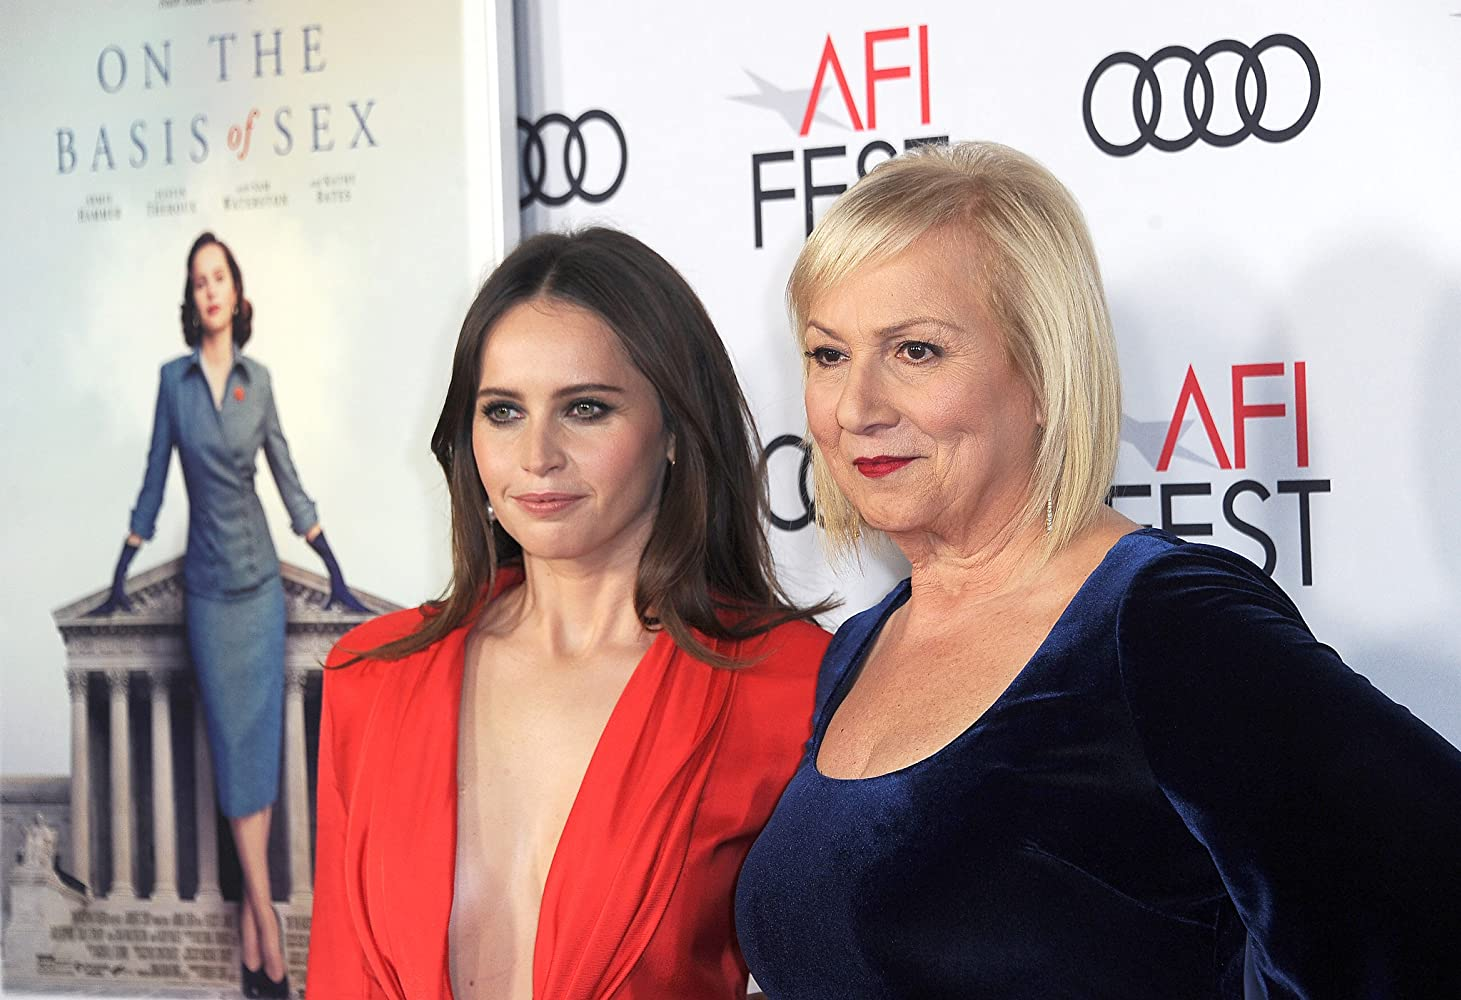 Mimi Leder and Felicity Jones at an event for On the Basis of Sex (2018)